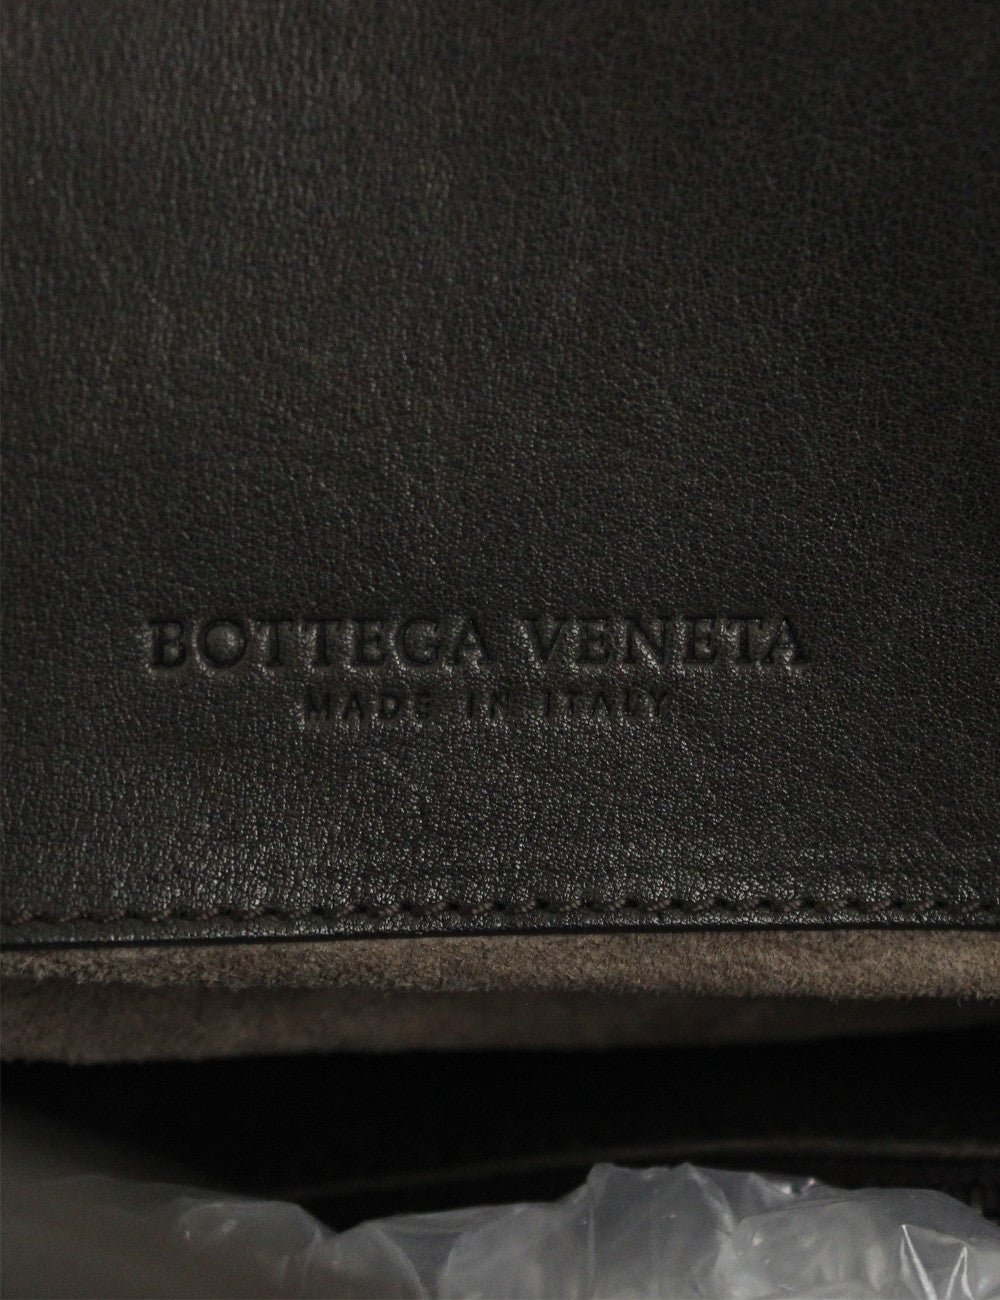 Bottega Veneta <br> Intrecciato Rugiada Shopper Tote Bag